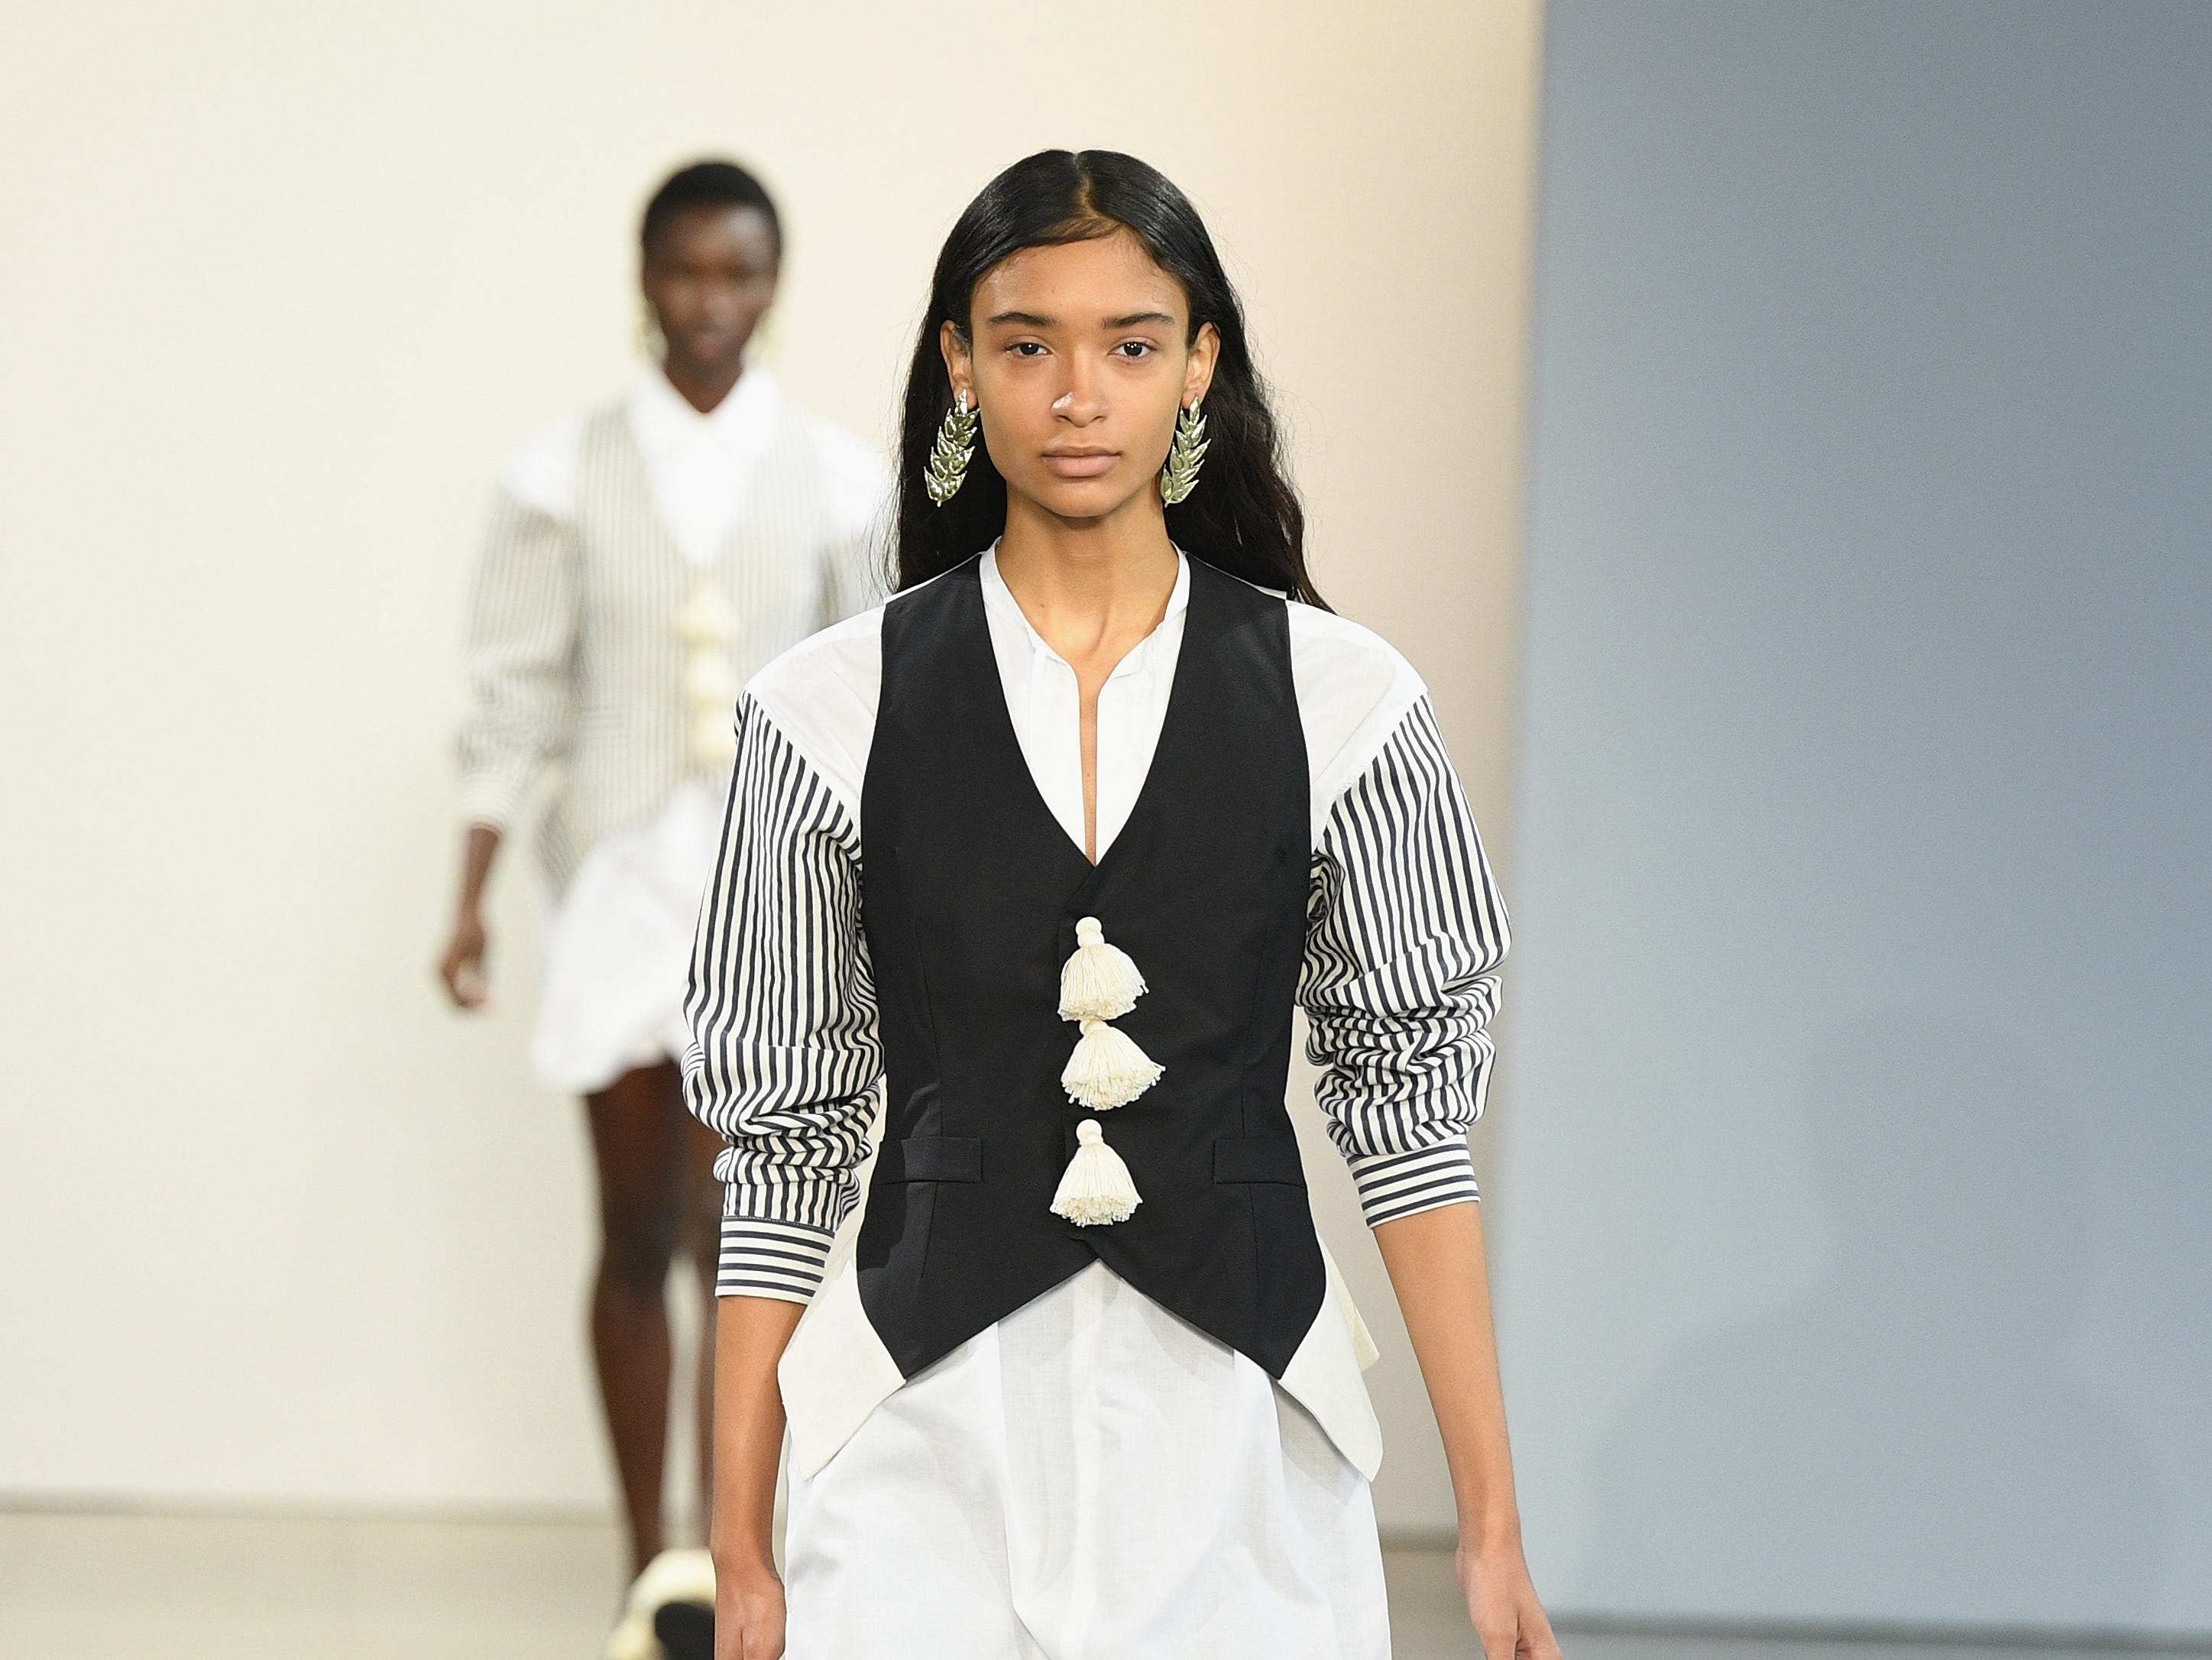 The Tome show gave us school girl vibes with vests and mixed patterns.